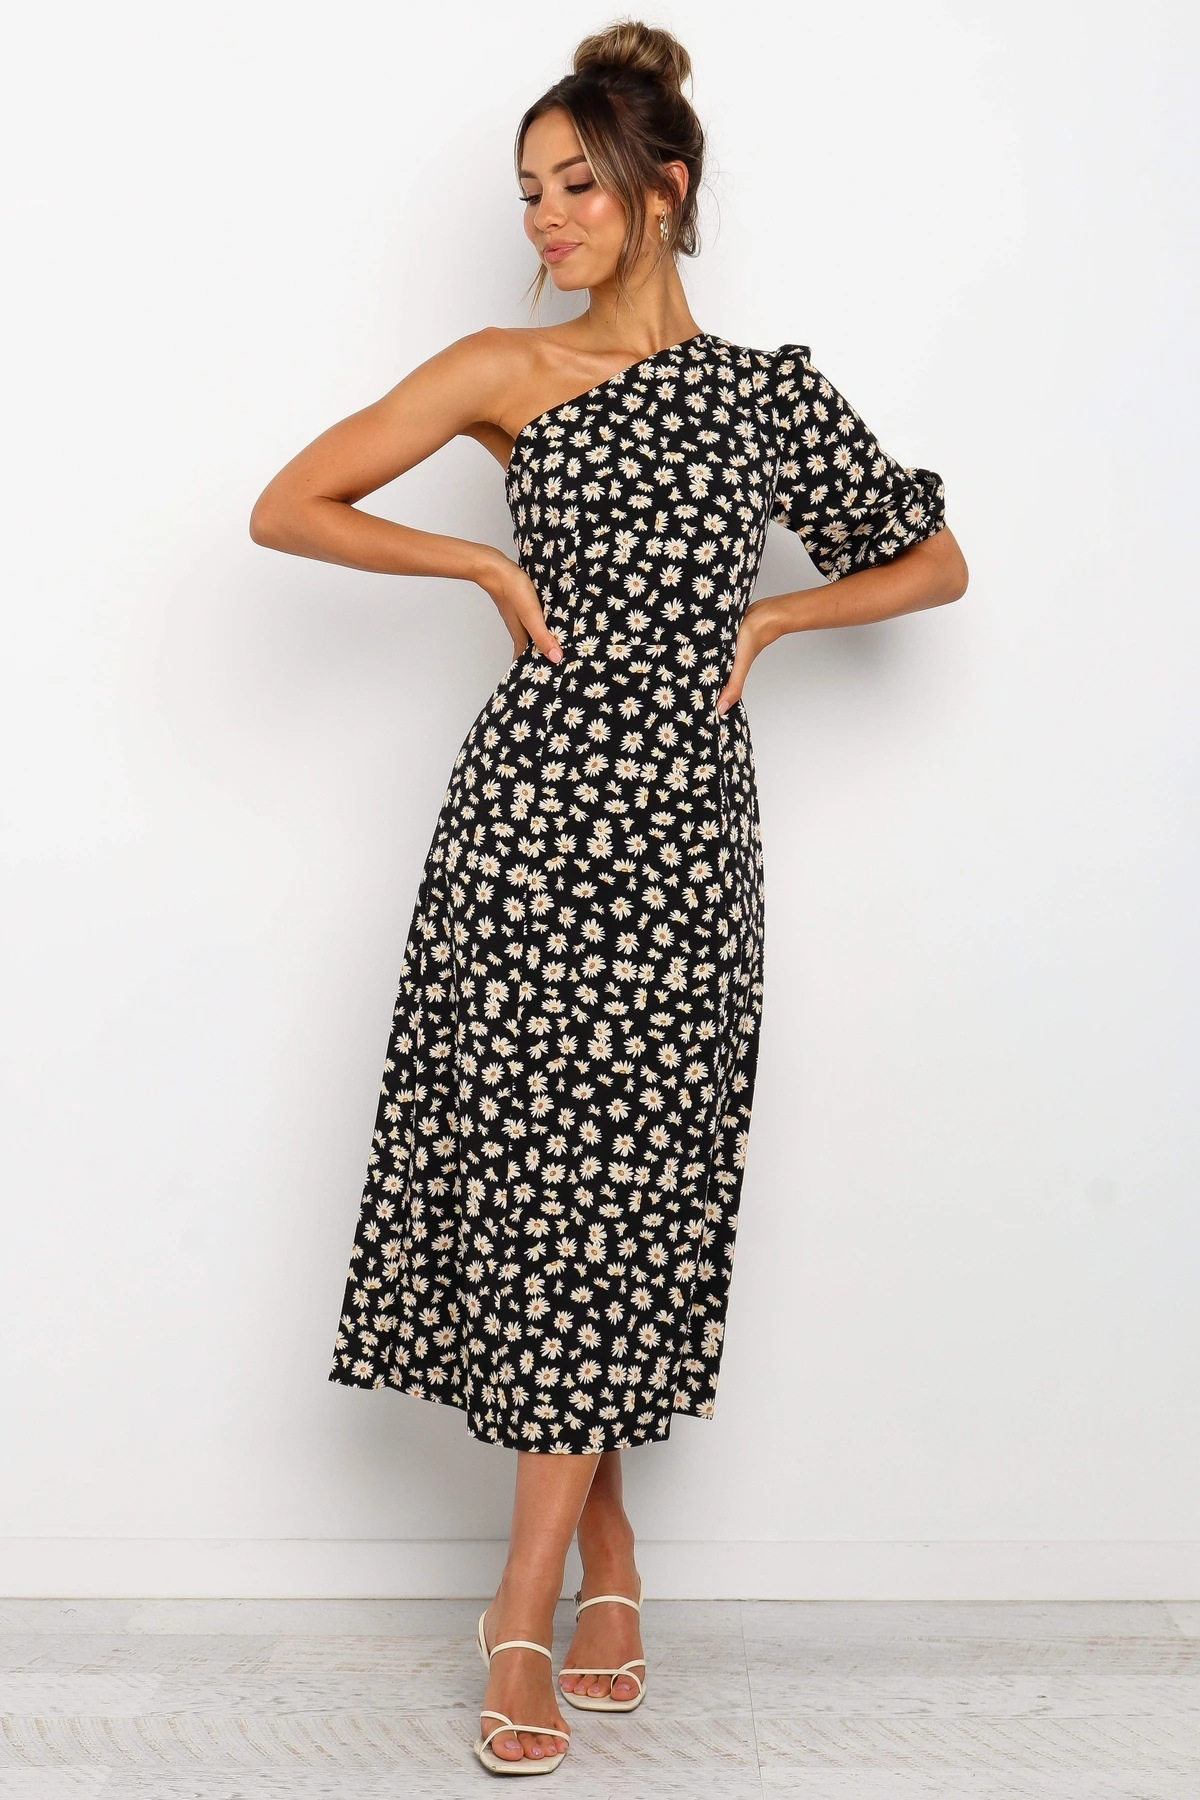 summer new style inclined collar sexy halter side slit printed dress long skirt NSYD3864